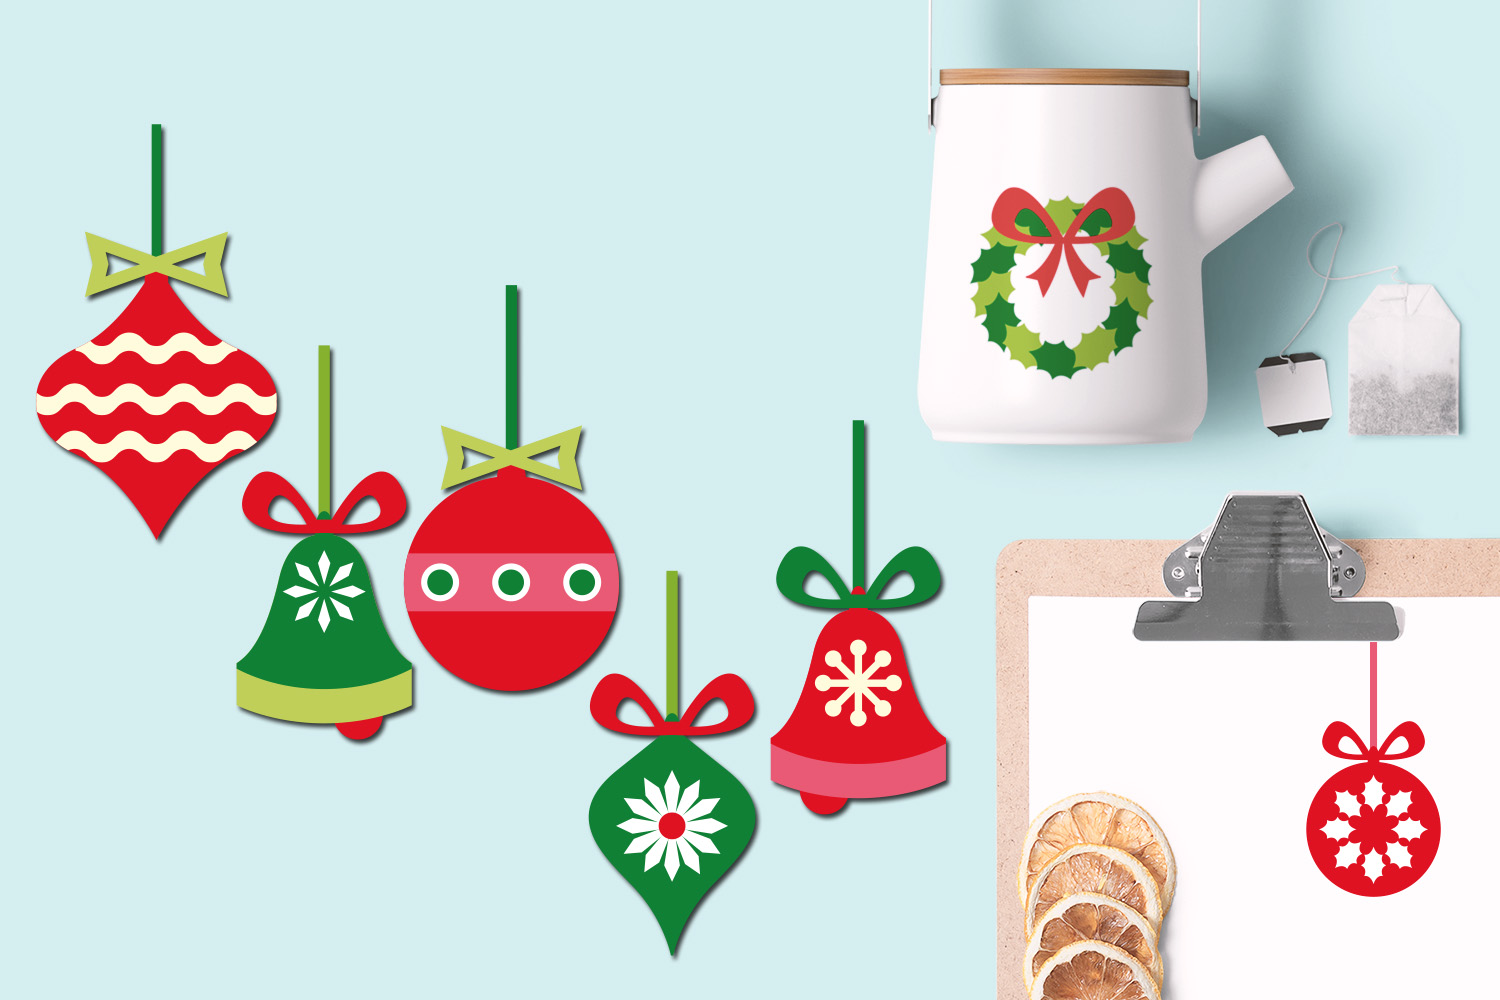 Christmas Hanging Ornaments Illustrations example image 2